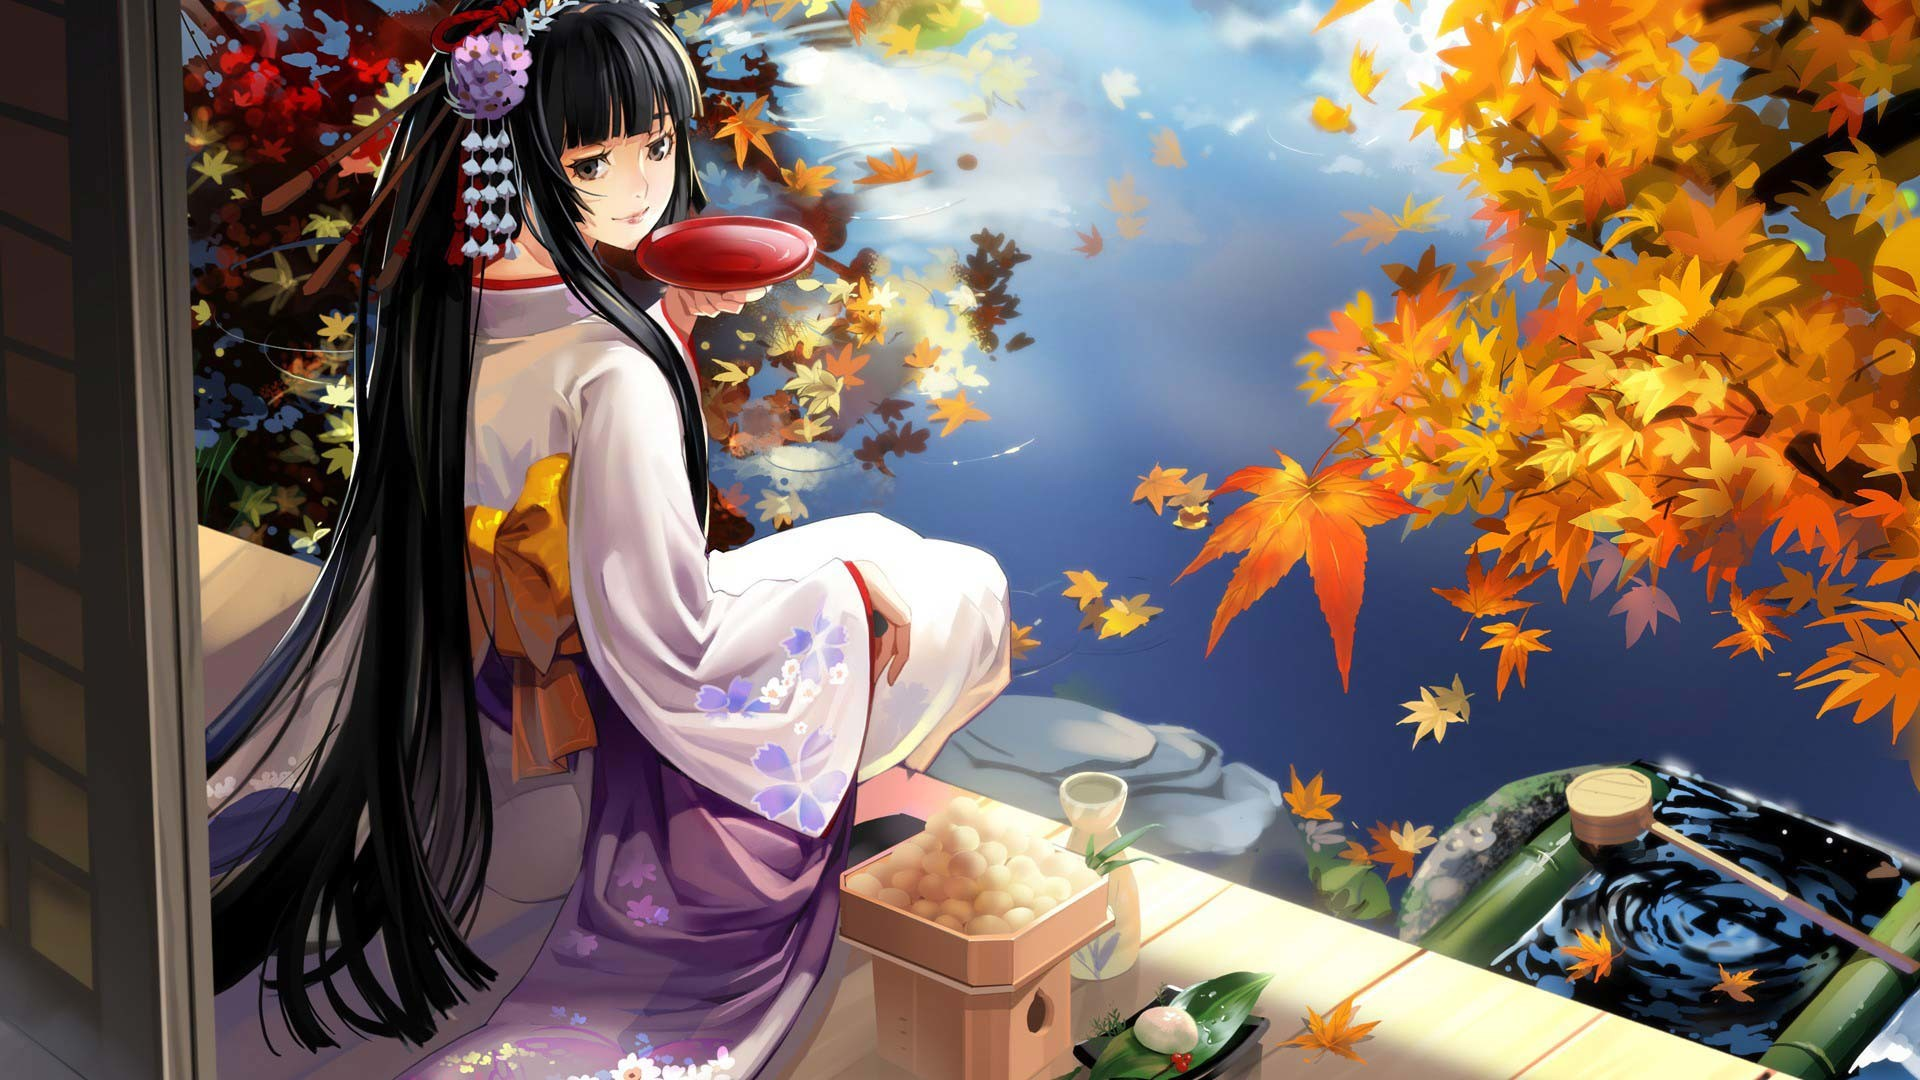 Cute Anime Wallpapers Hd 61 Images